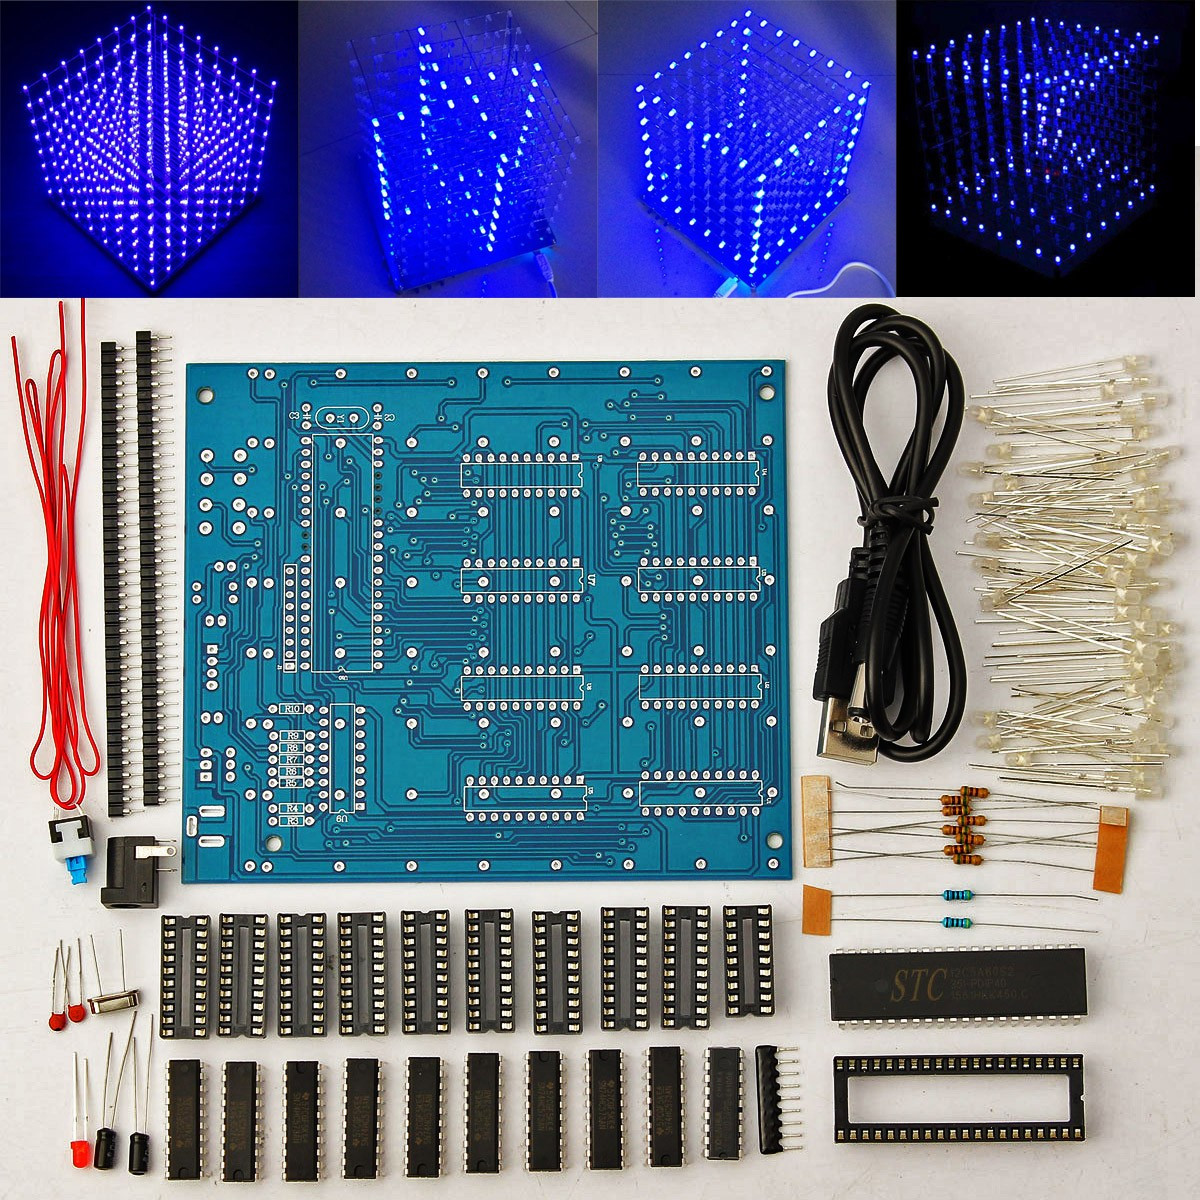 8x8x8 LED Cube 3D Light Square Blue LED Electronic DIY Kit Module(China)